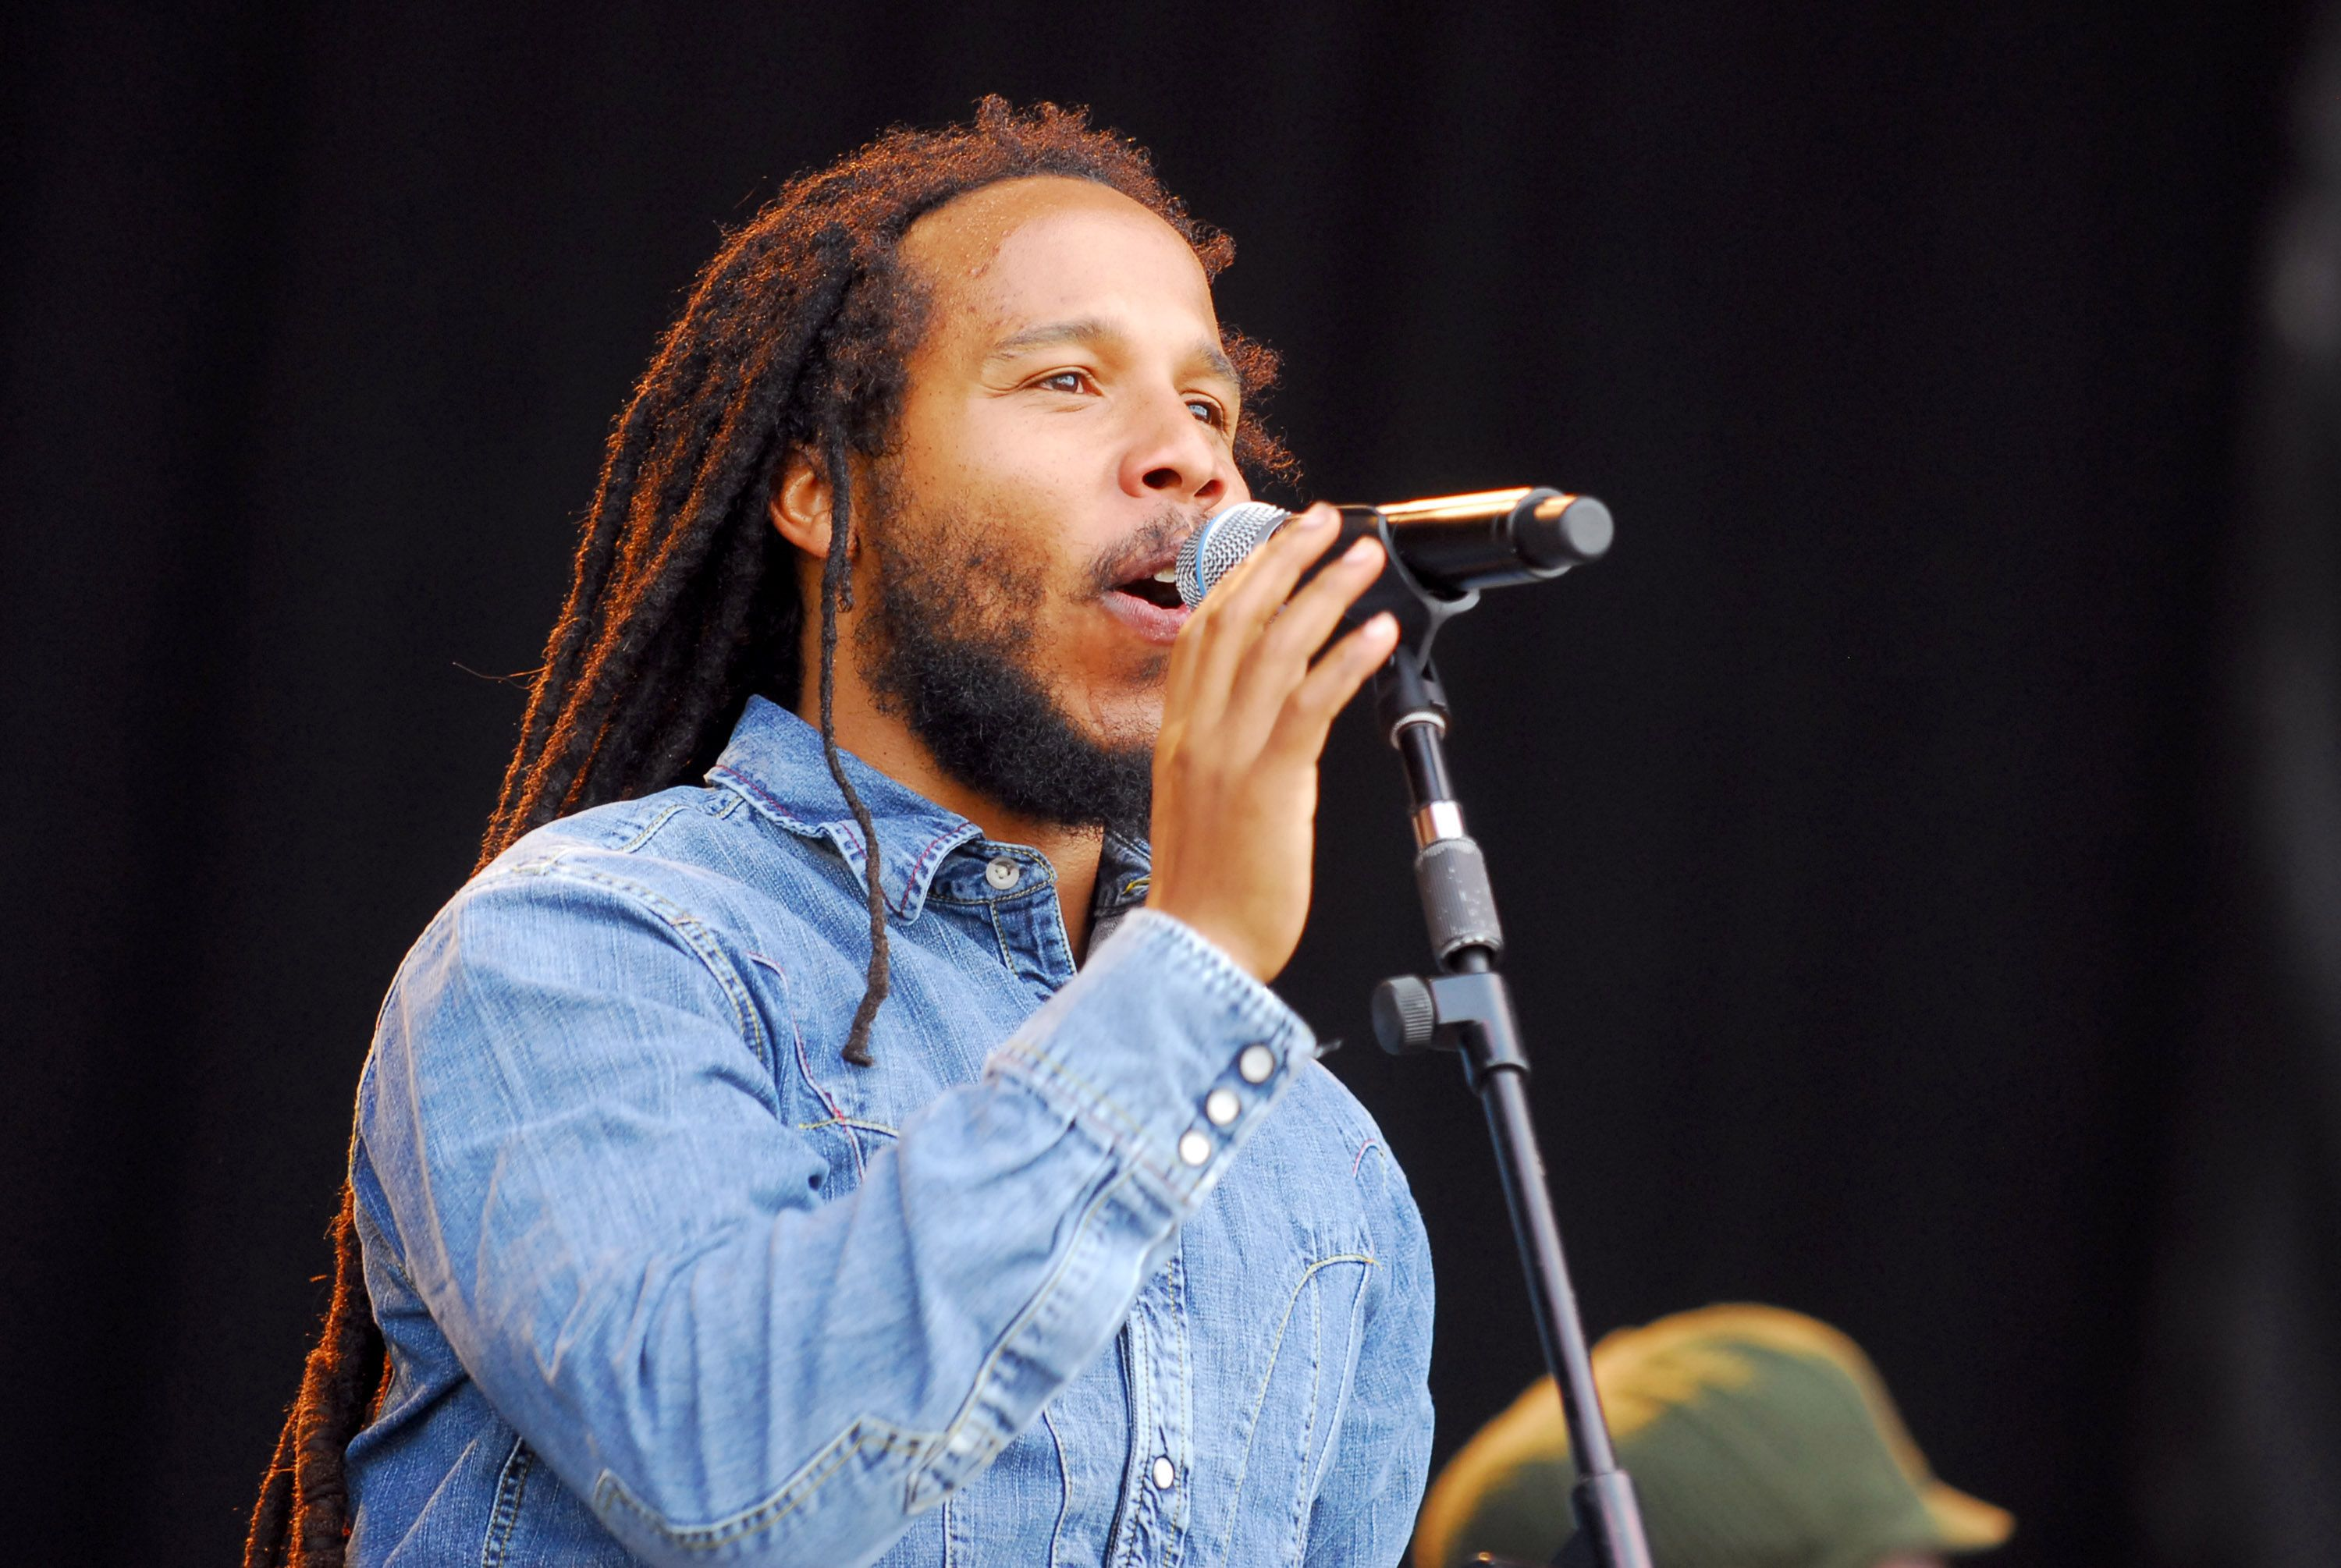 Ziggy Marley during  the second day of Bonnaroo 2007 at What Stage in Manchester, Tennessee, United States. | Source: Getty Images